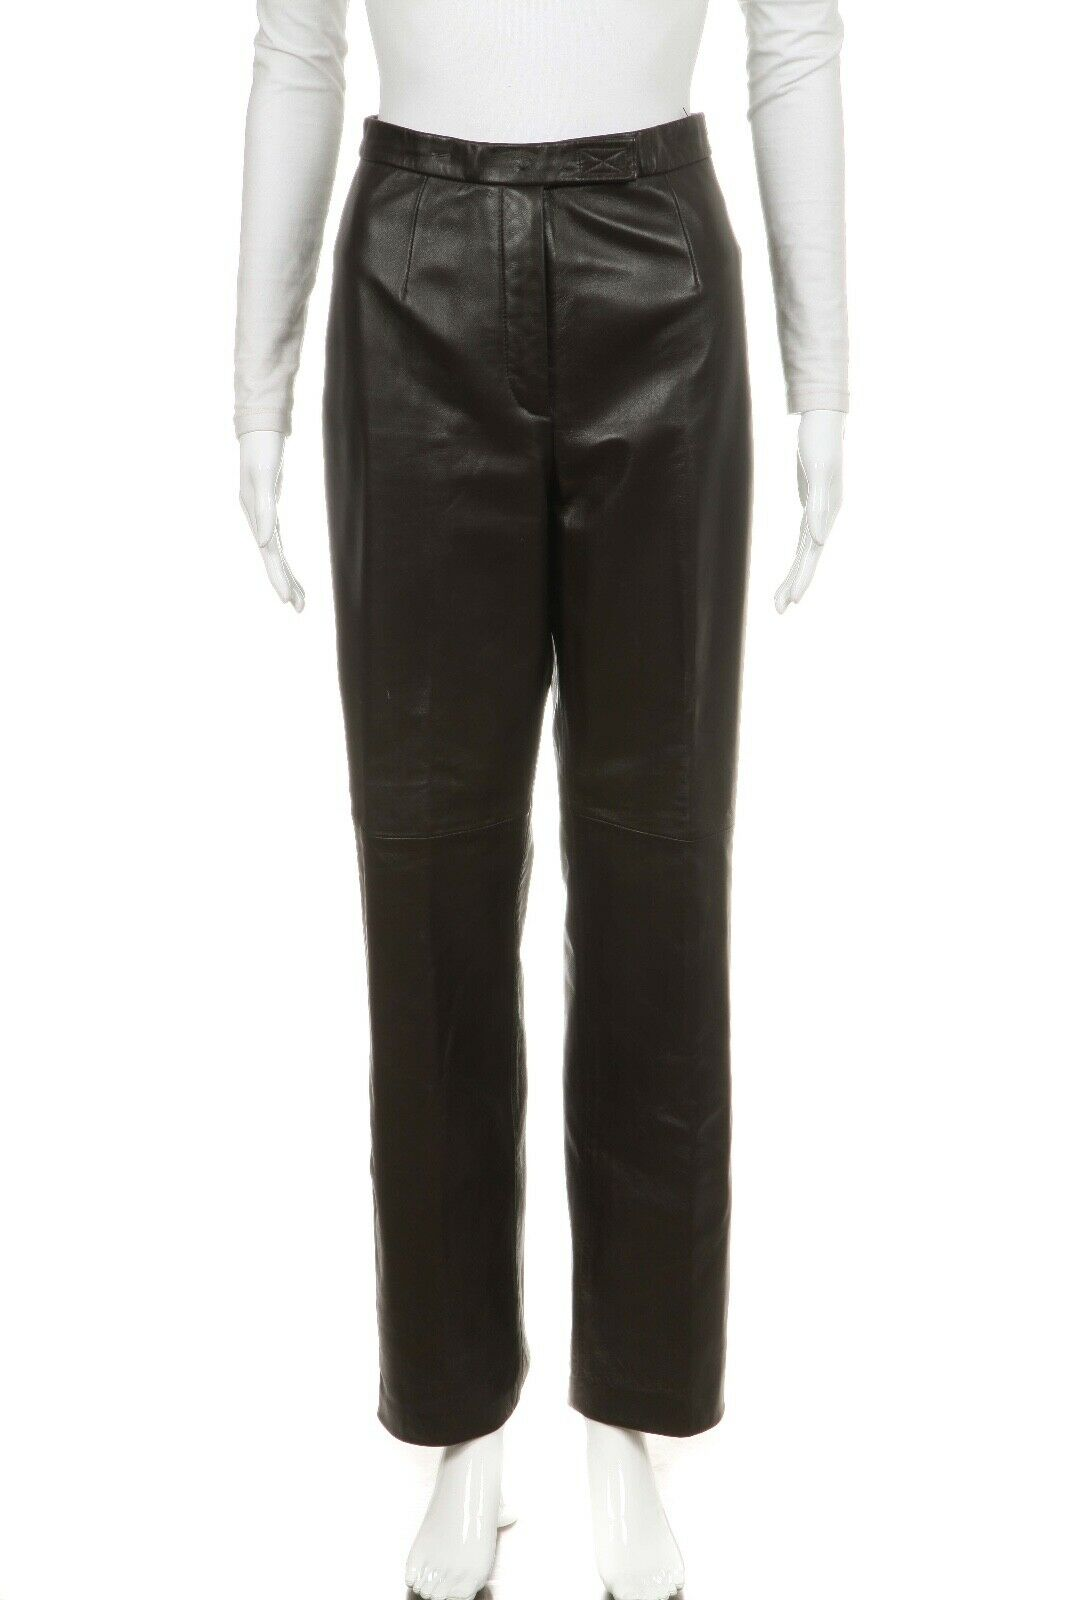 SIENA STUDIO Straight High Waisted Leather Pants Size 6